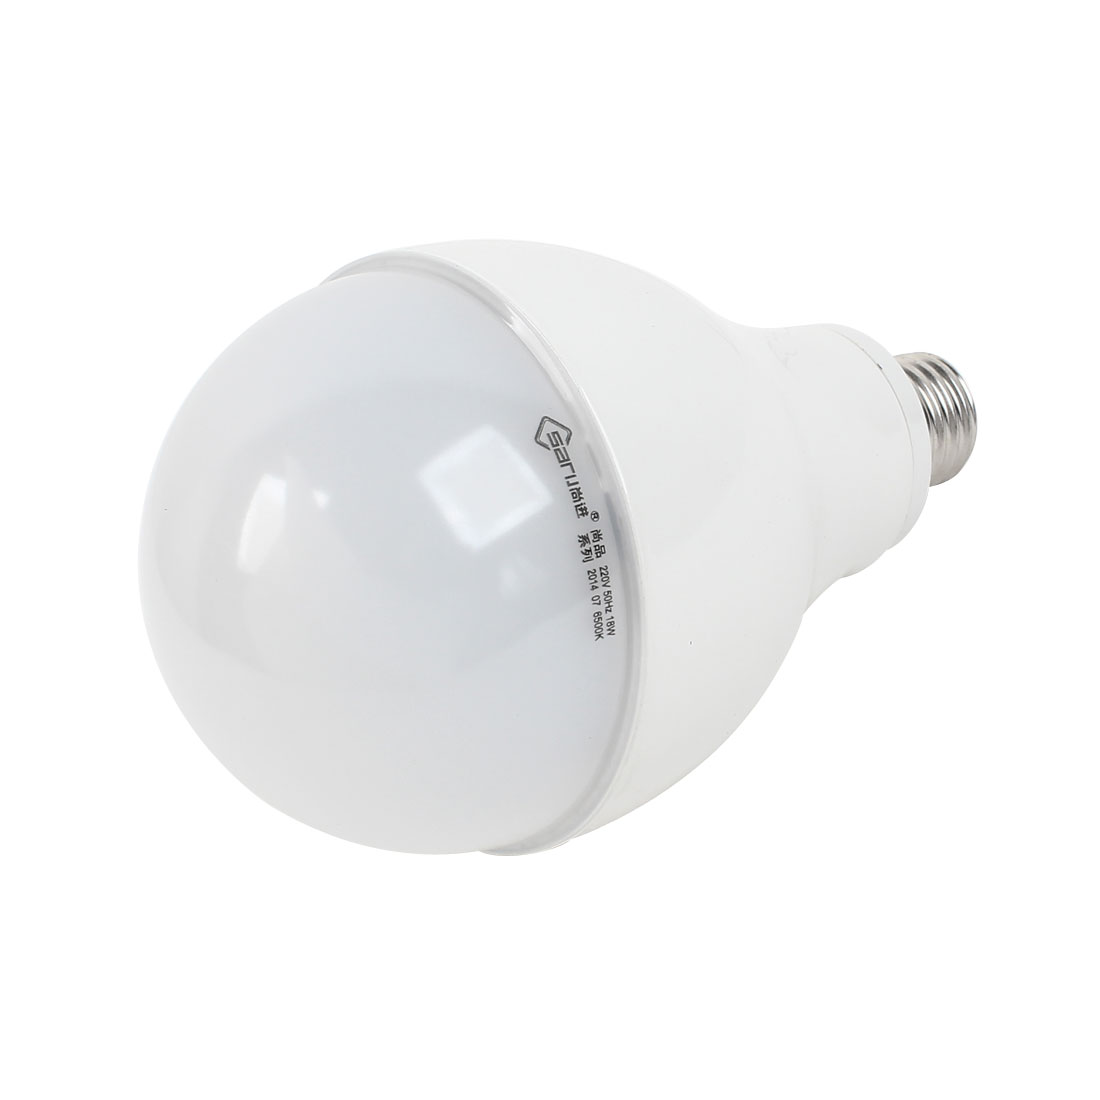 Home E27 Energy Saving LED Globe Ball White Light Lamp Bulb AC 200V-240V 18W